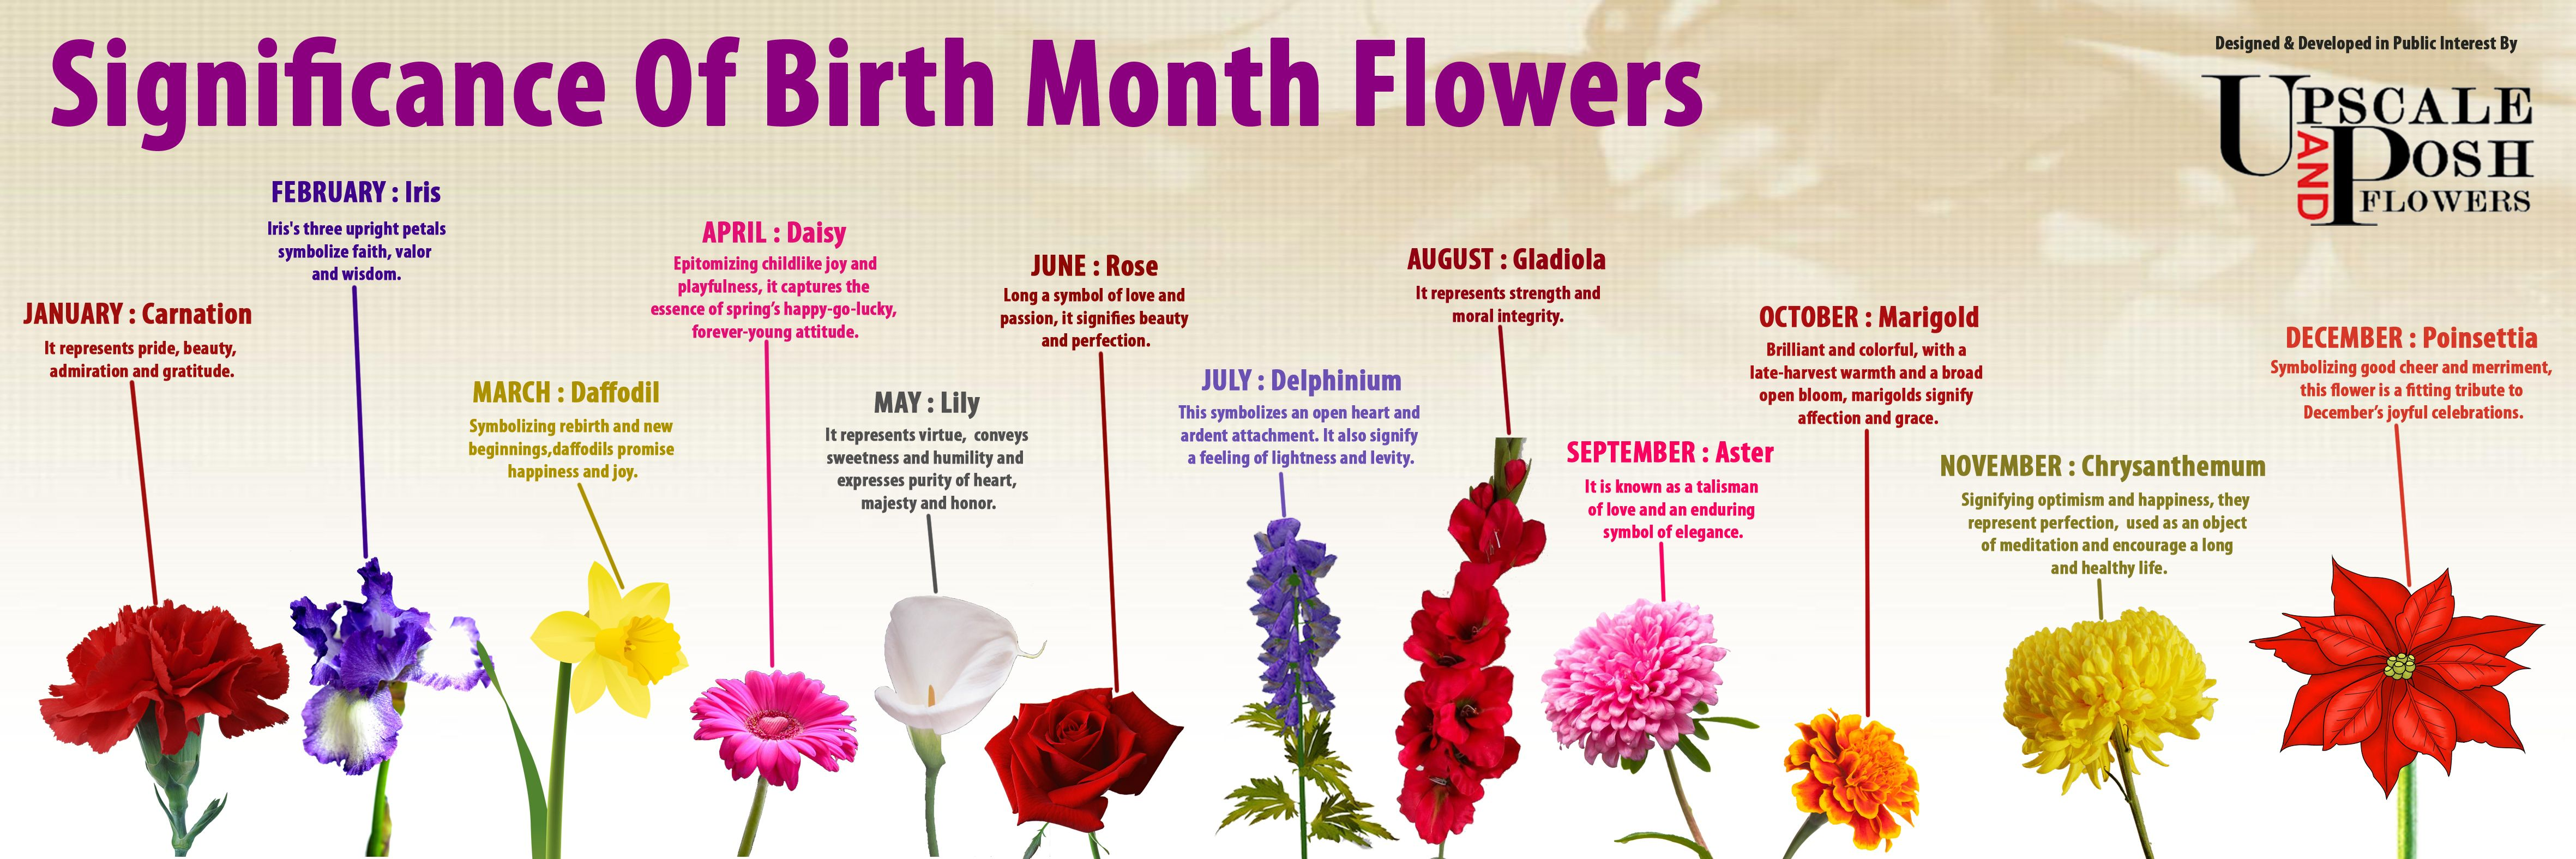 birth flowers May birth flower may is a month full of flowers since it bridges the gap between spring and summer in most areas of the northern hemisphere, but not all of the flowers that bloom during this time are considered a birthday flower for may.